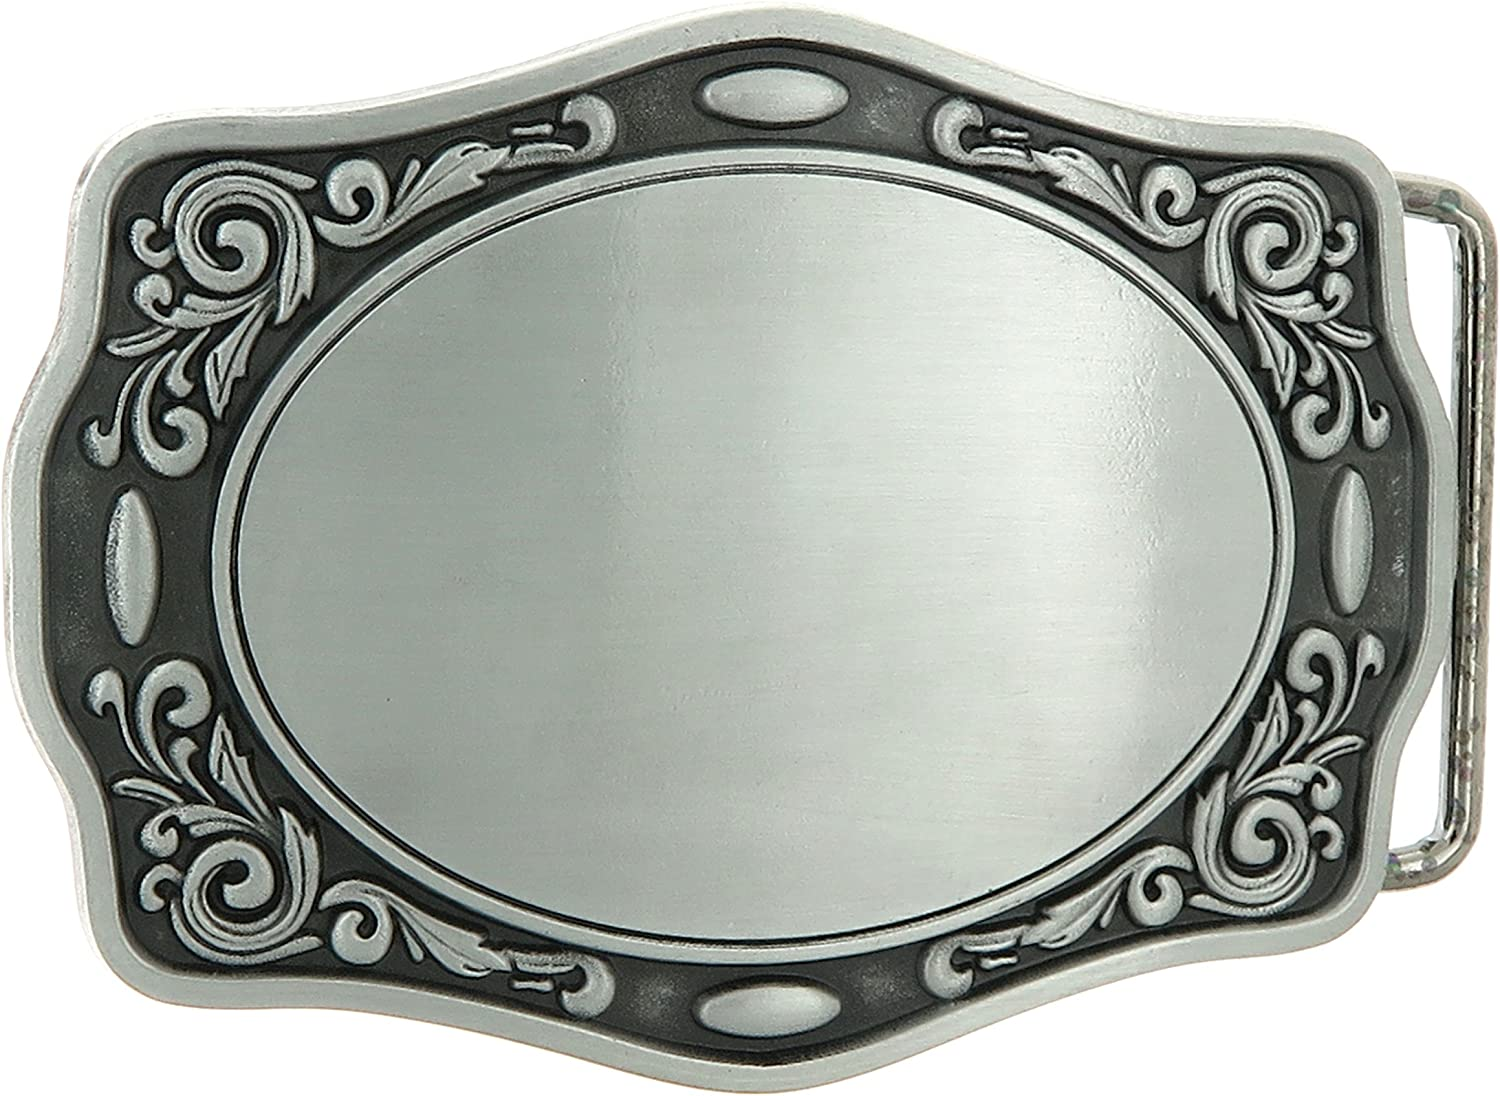 Blank Flower Trim Oval Western Metal Fashion Belt Buckle